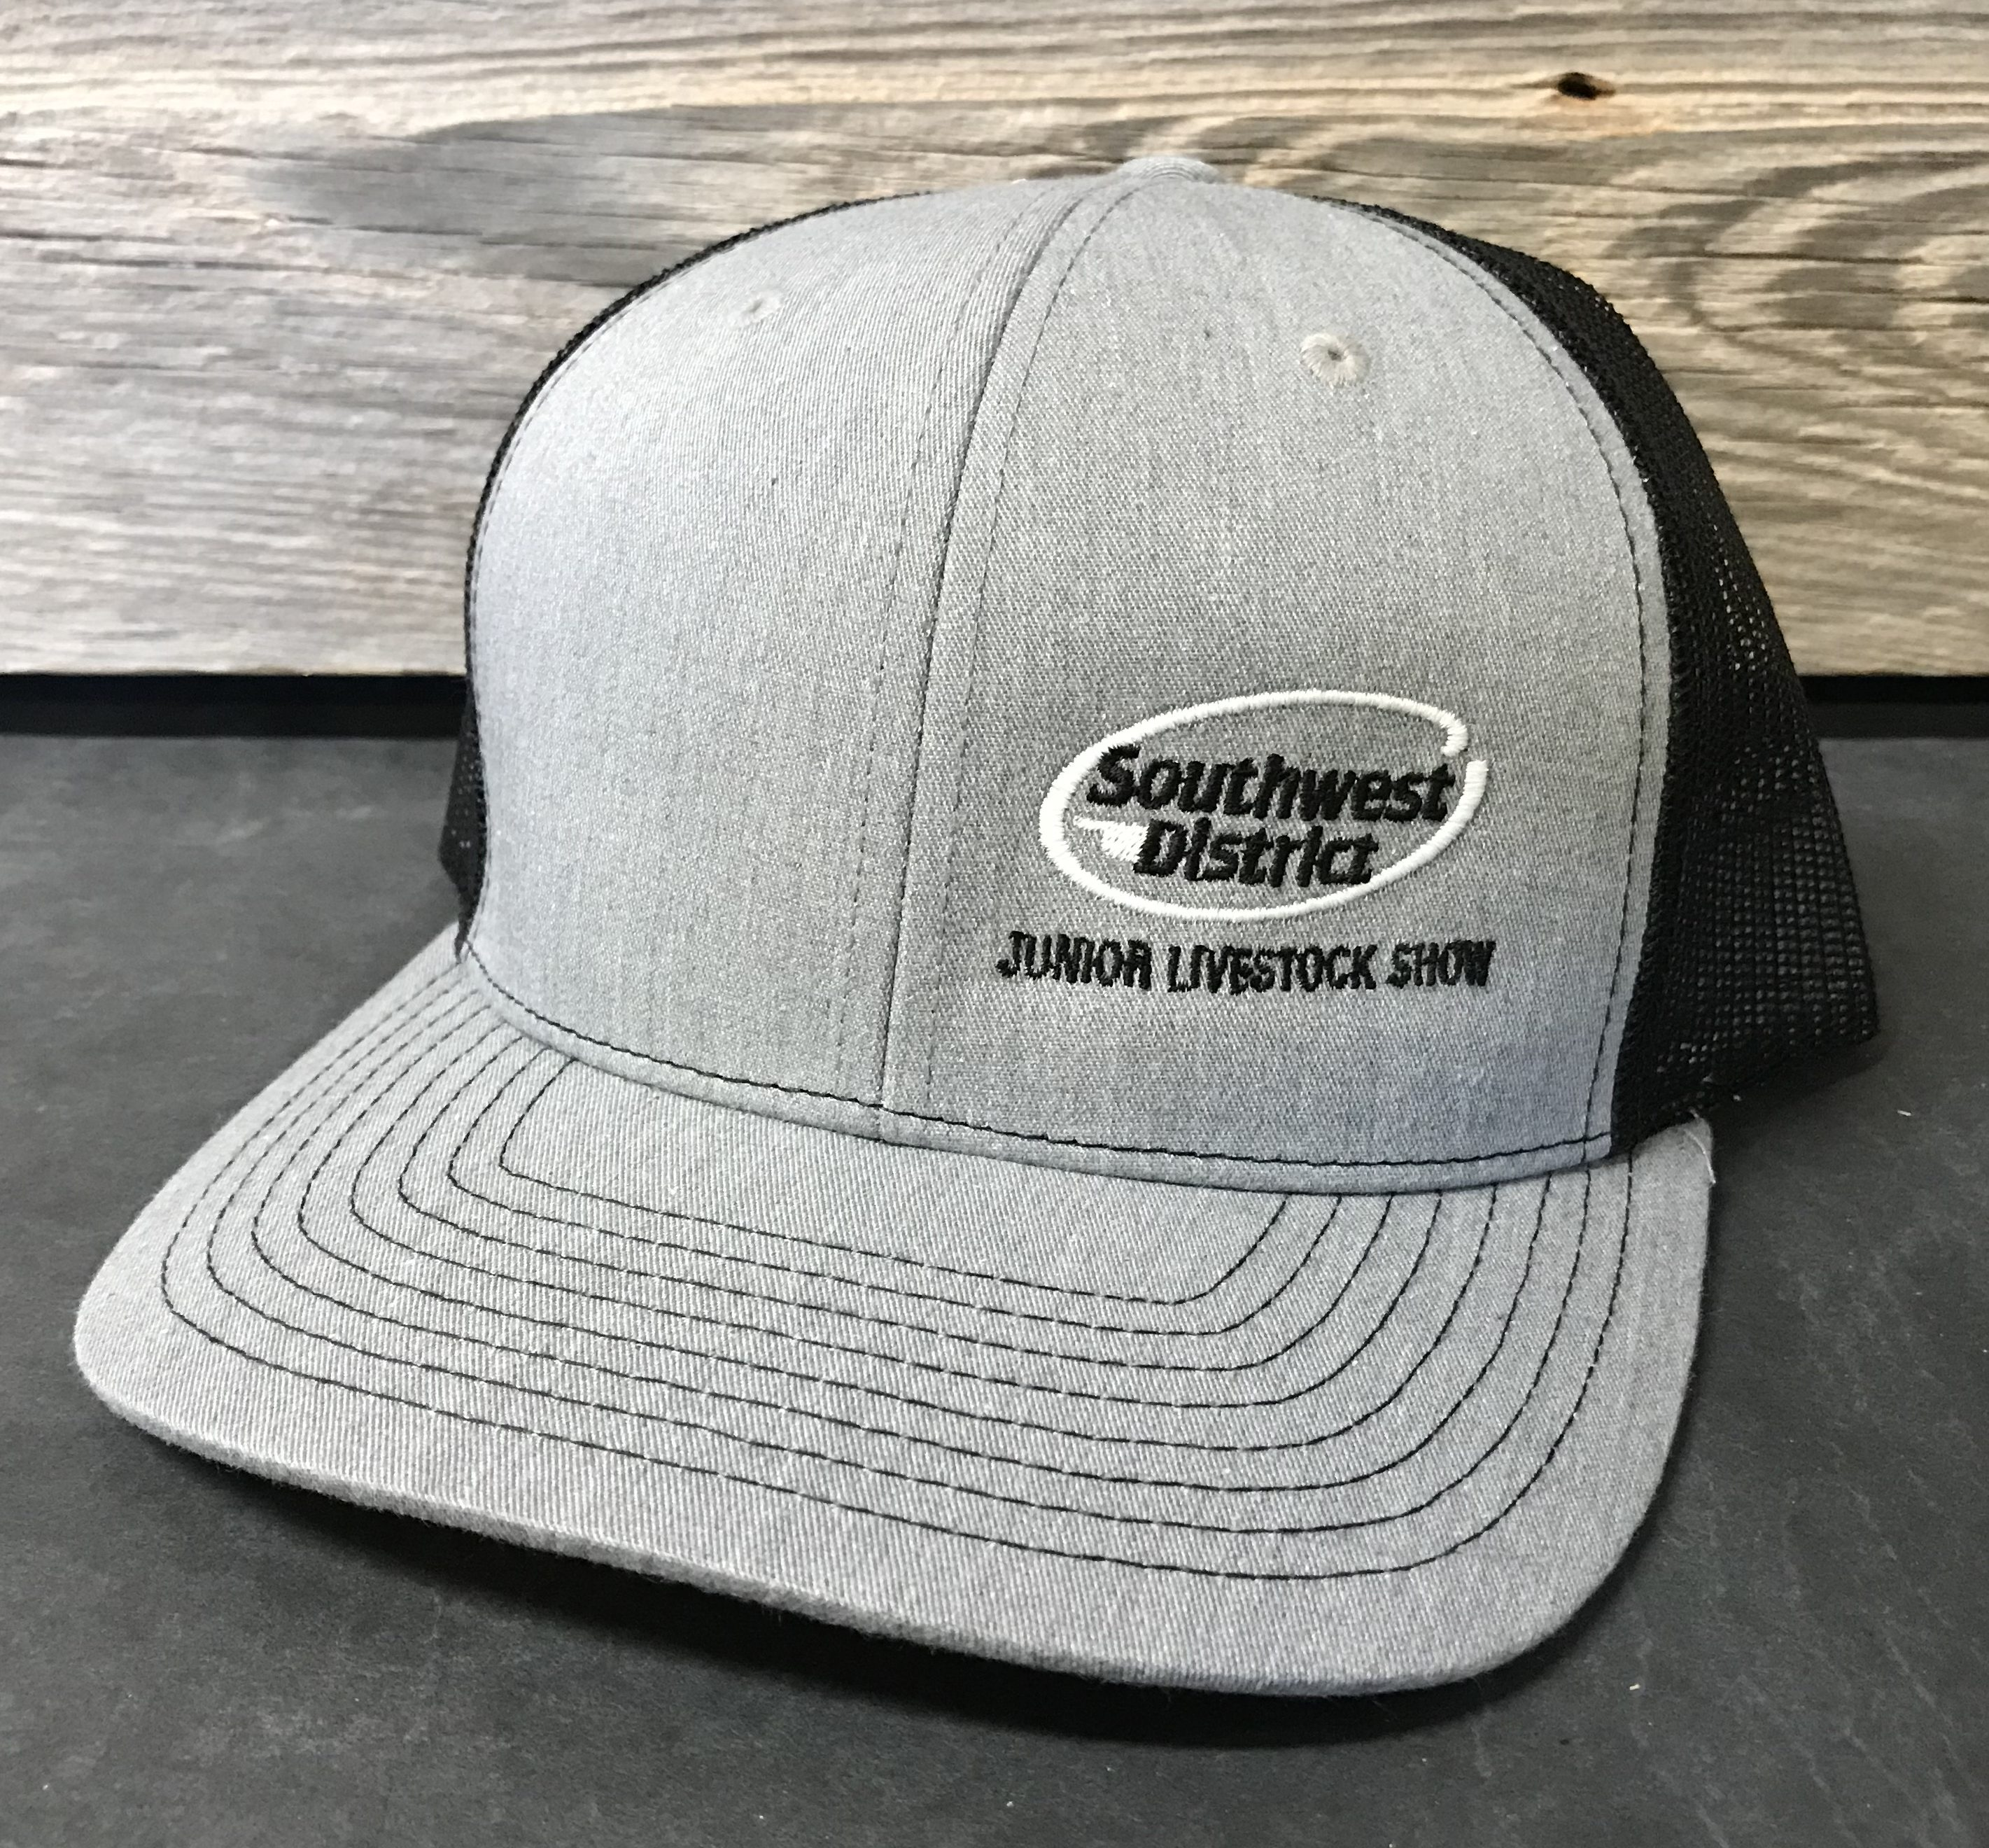 SW District Livestock Show Cap